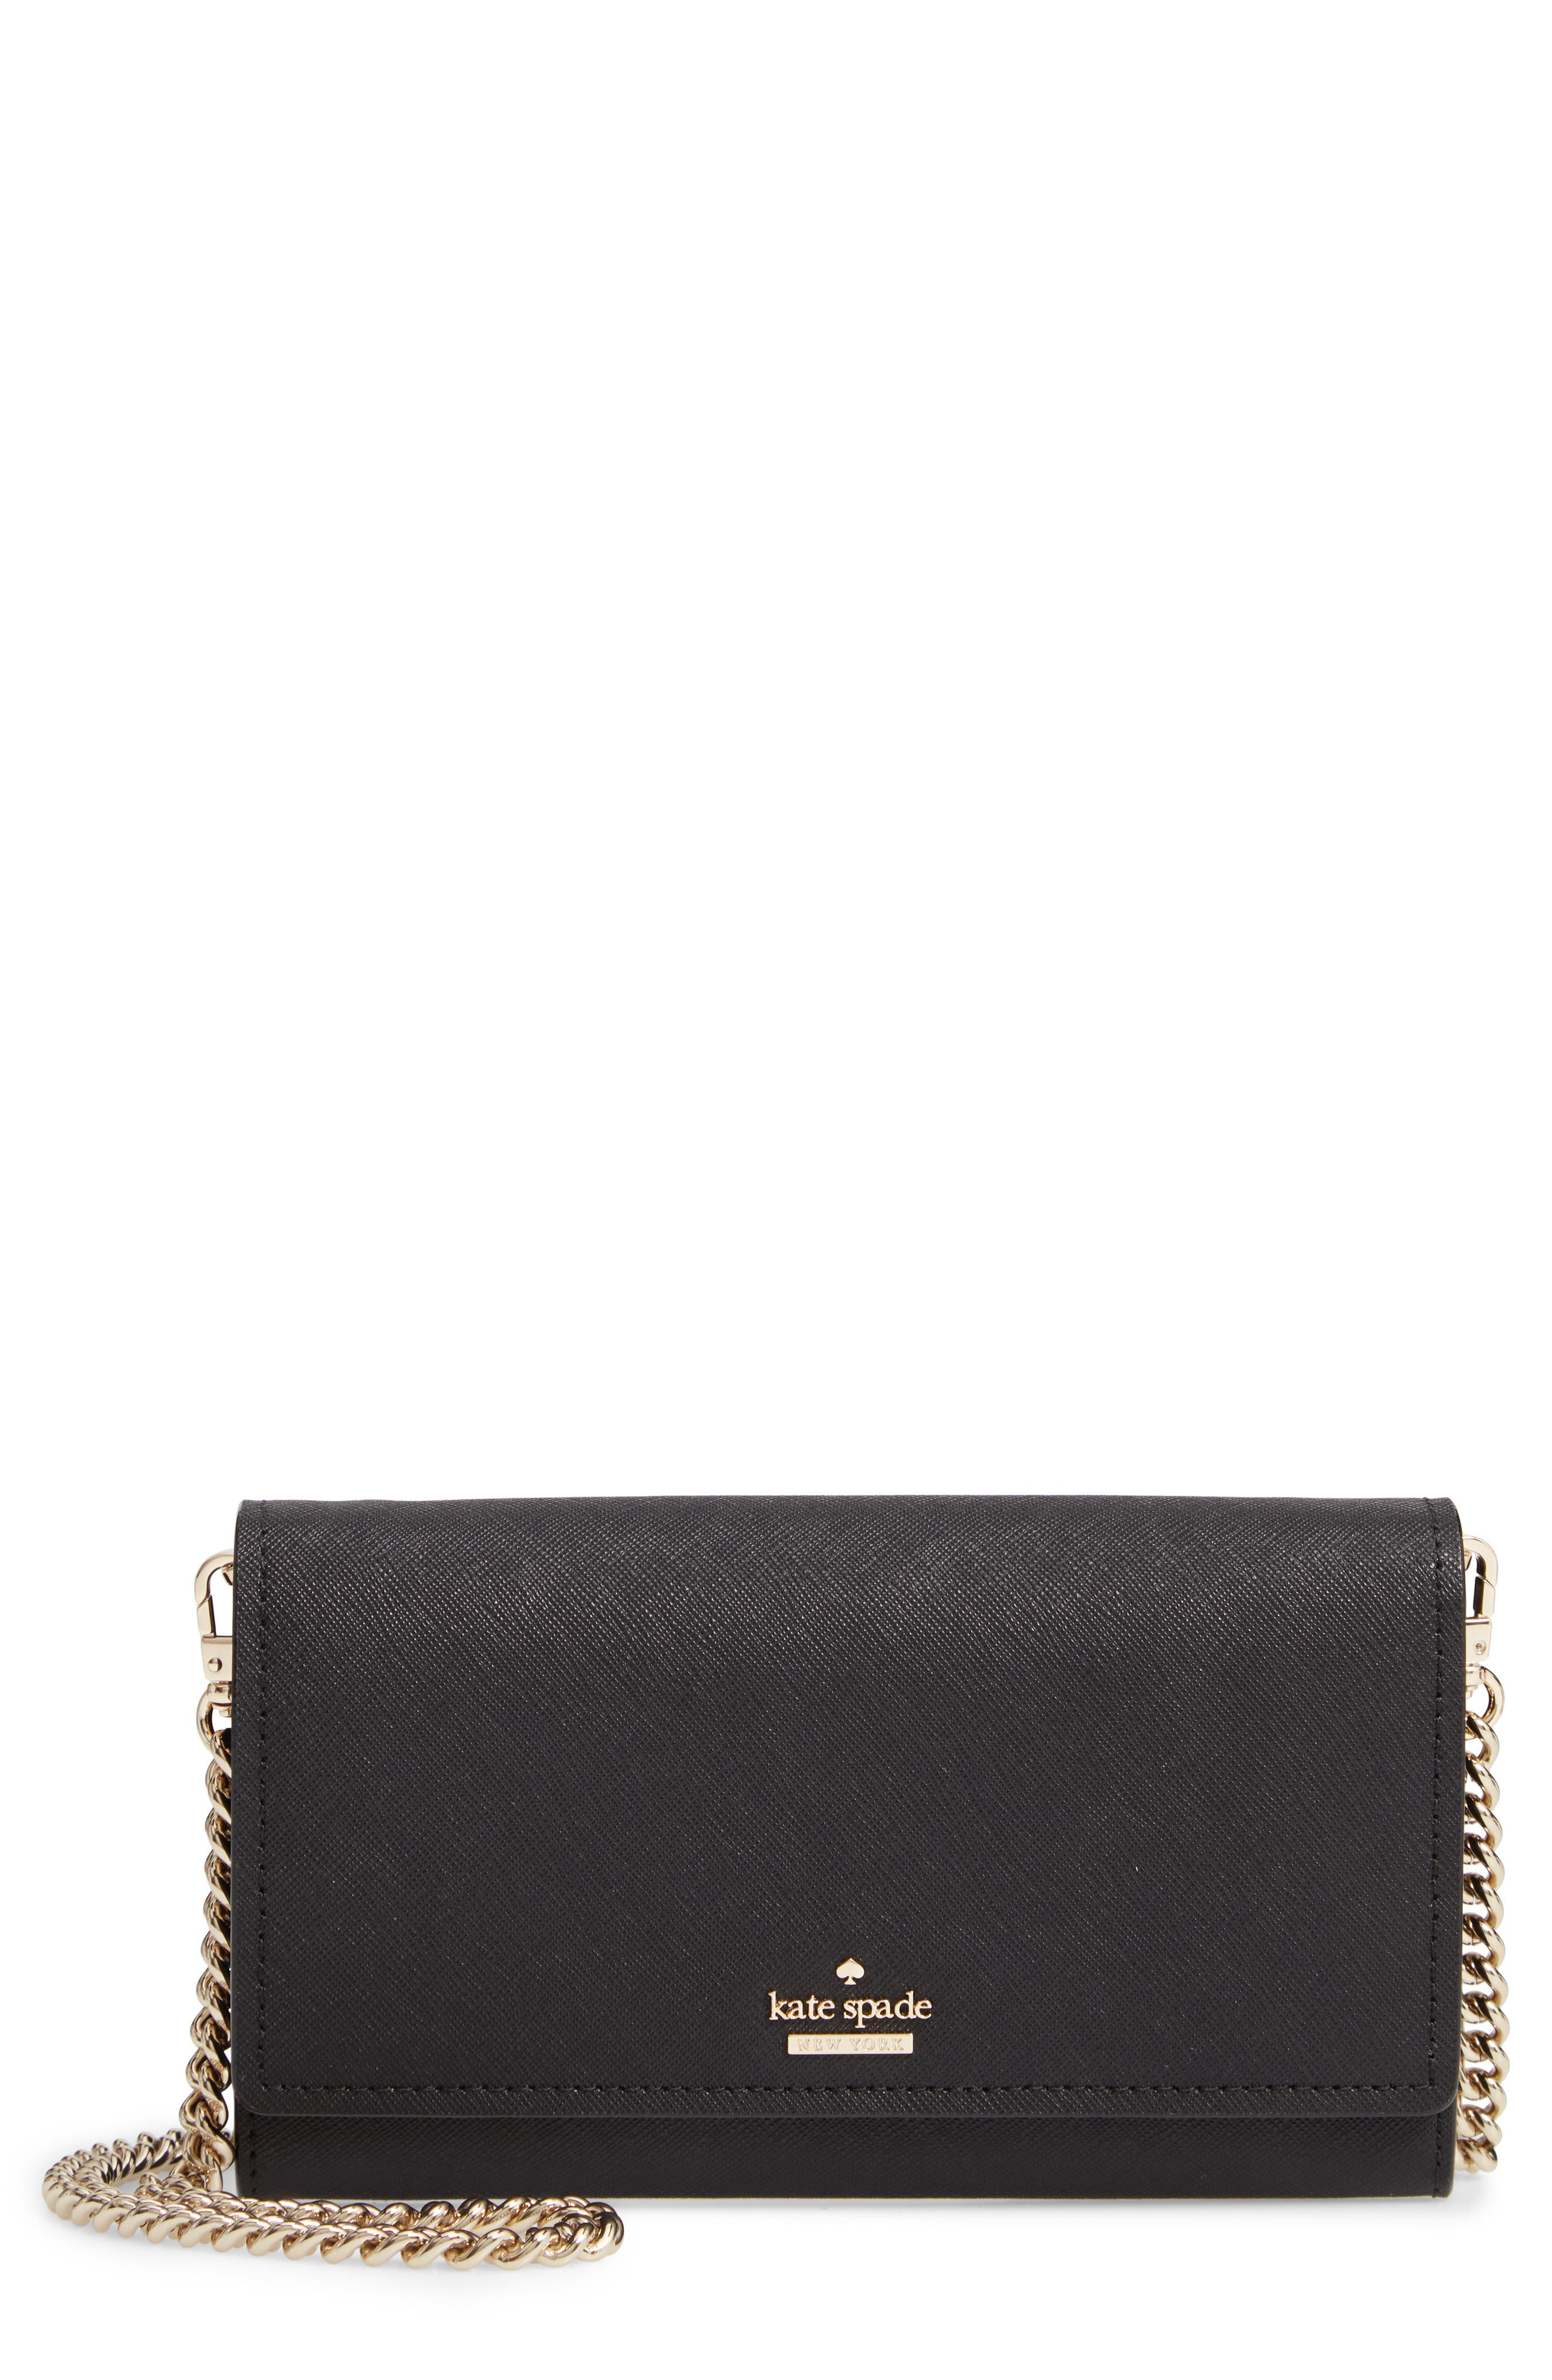 cameron street - franny leather wallet on a chain,                             Main thumbnail 1, color,                             001